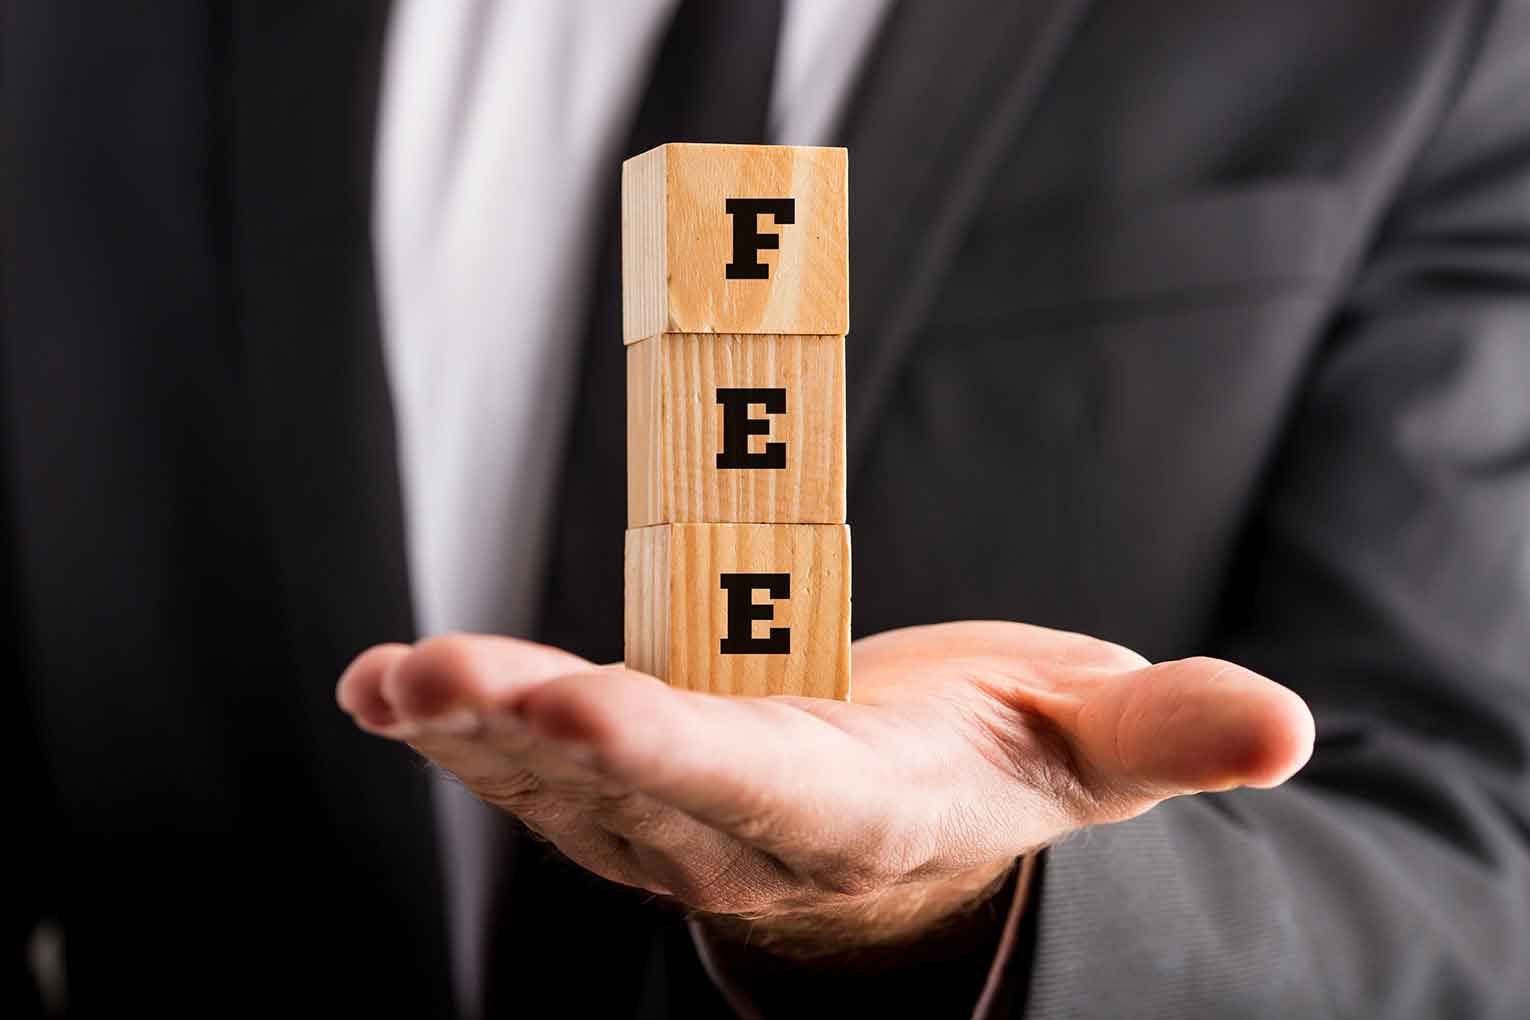 The Leeds extends retention proc fee offering